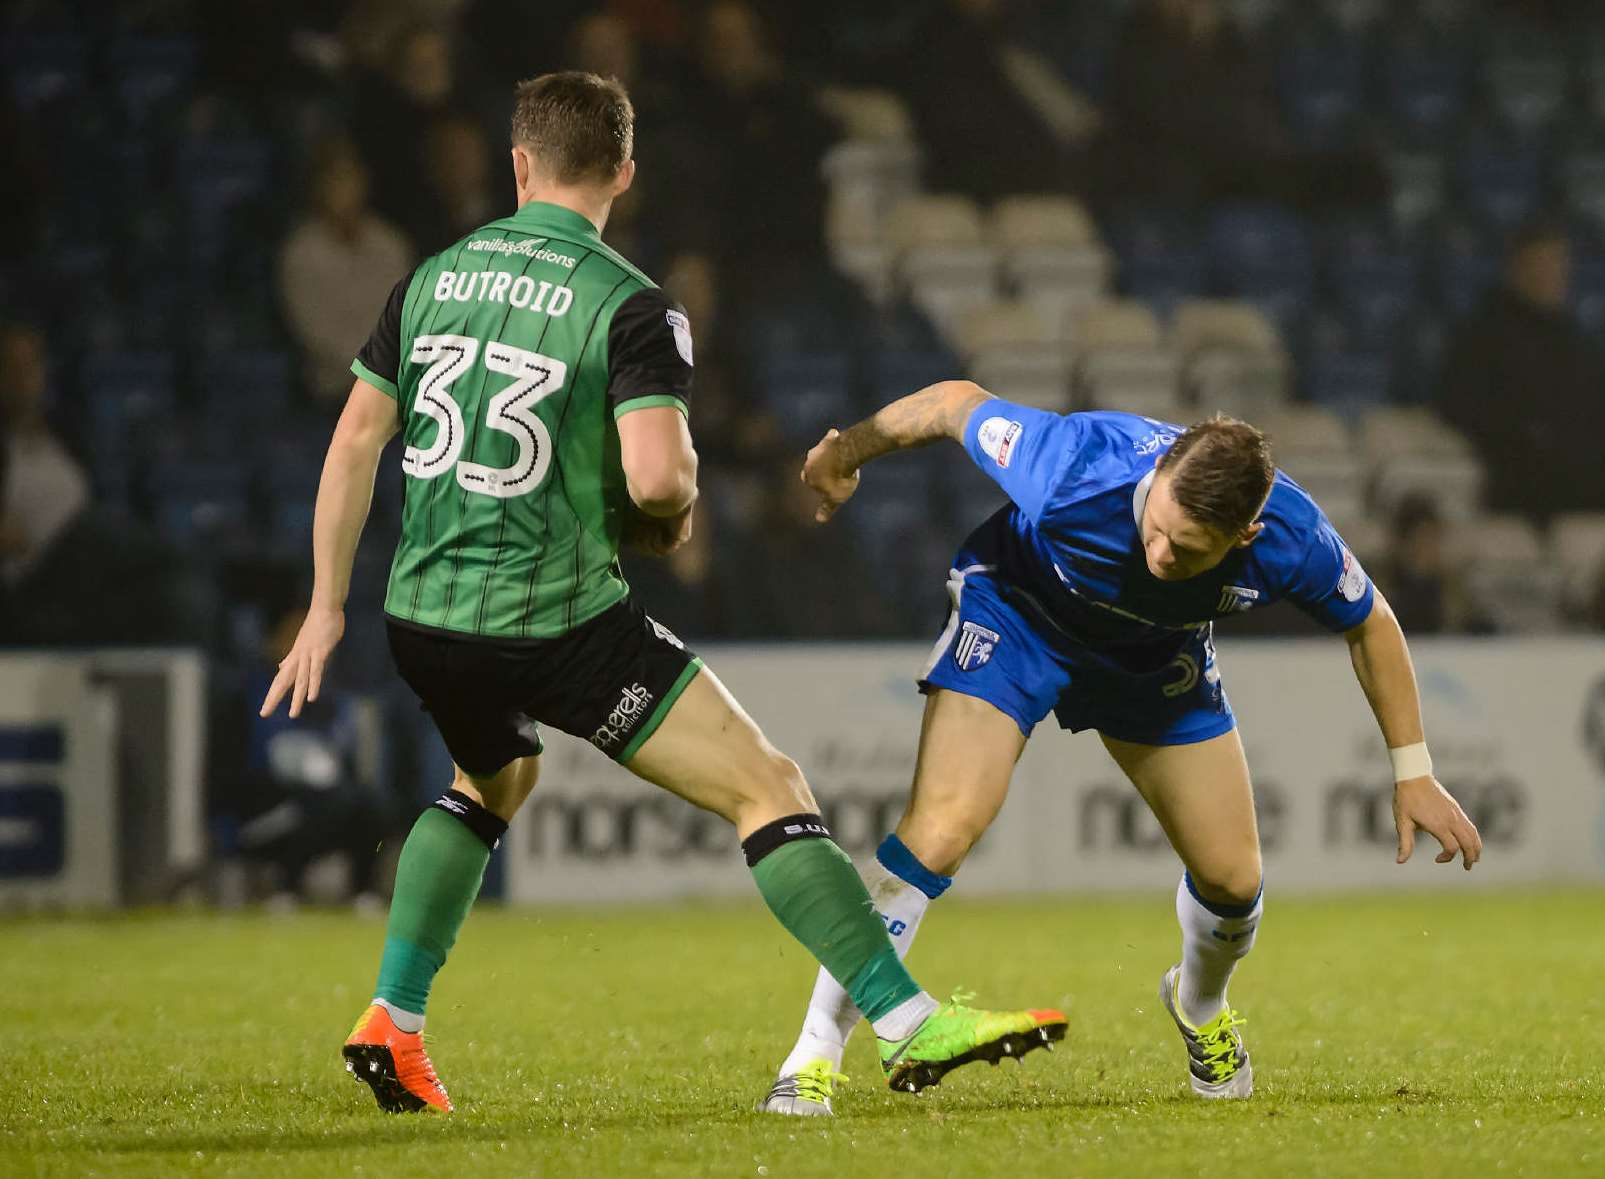 Mark Byrne in action for the Gills Picture: Andy Payton